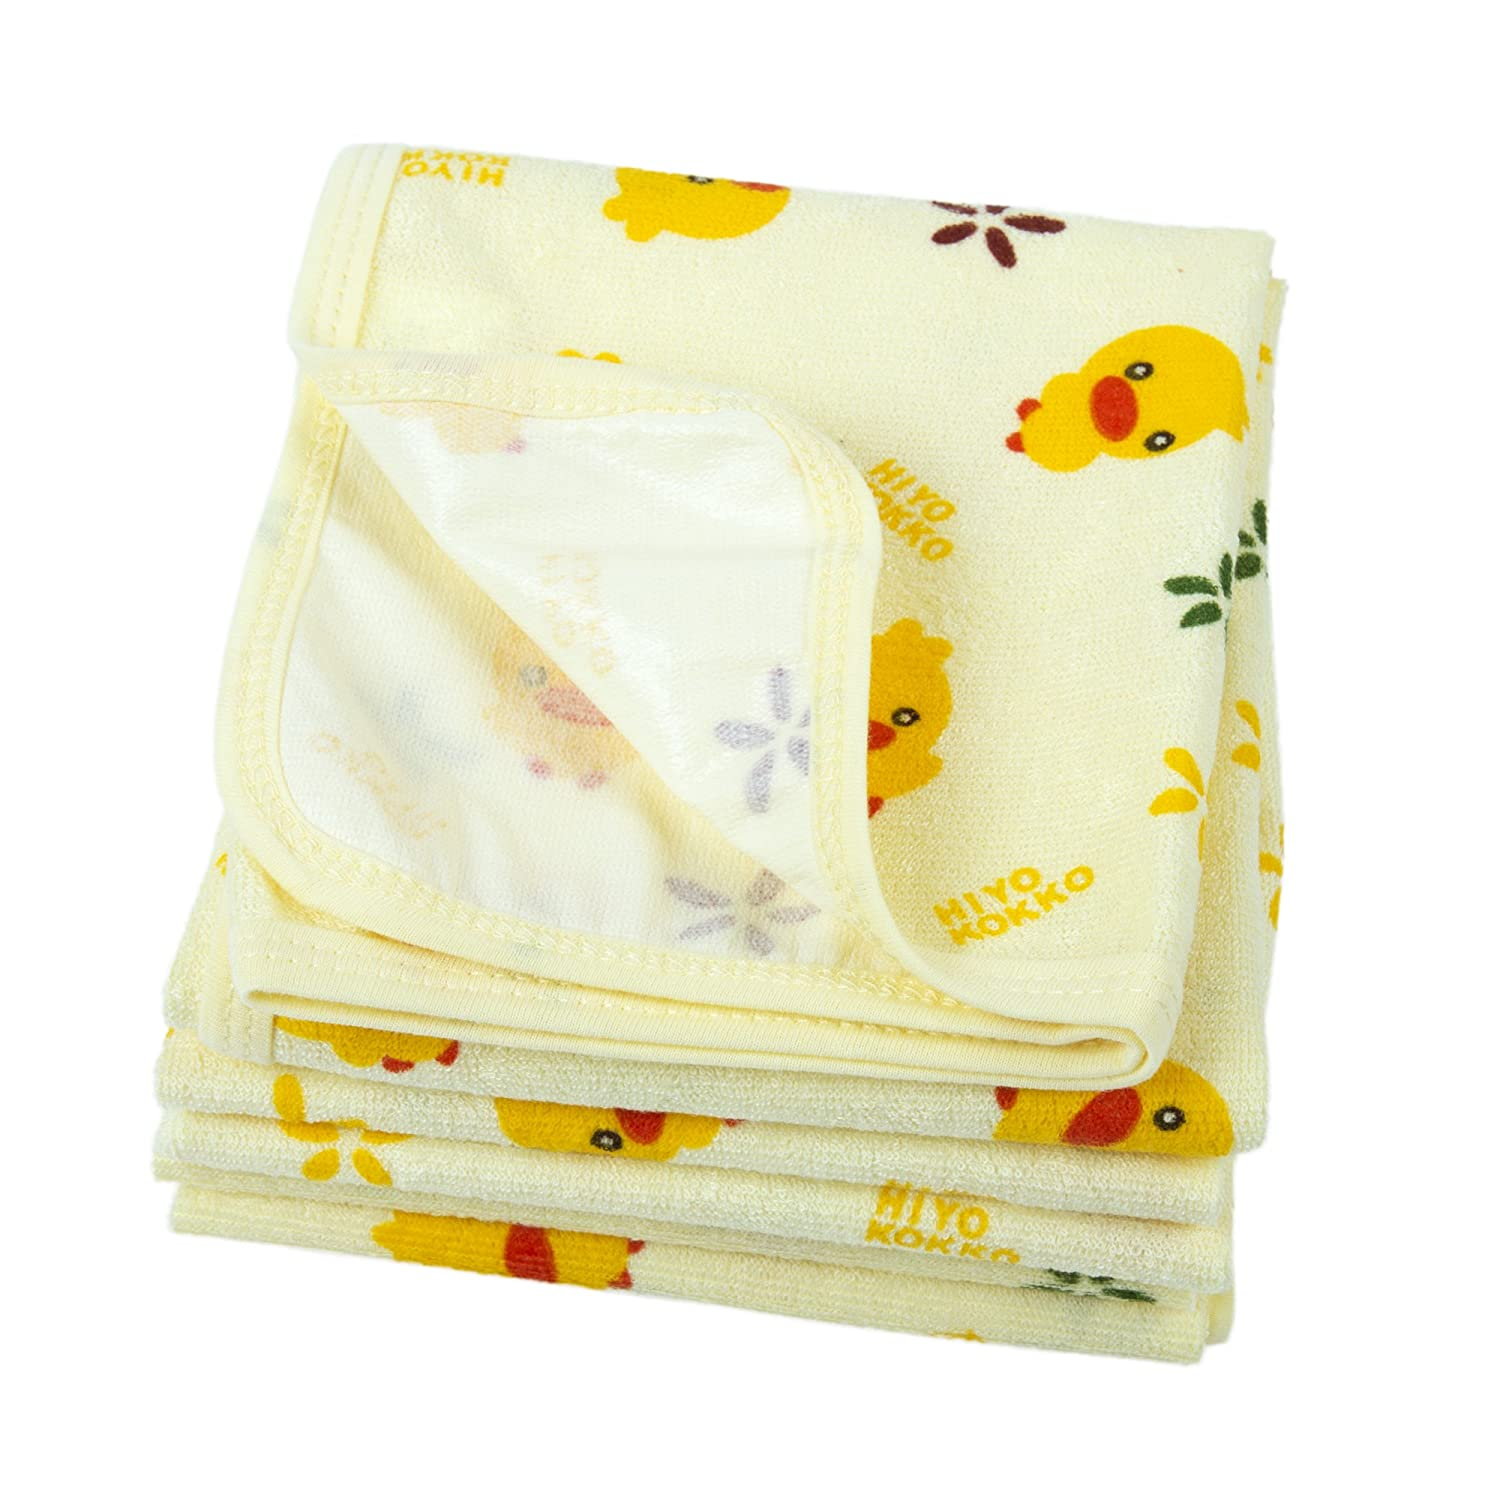 BIG ELEPHANT 3 Pack Changing Pad Liners Cotton Waterproof and Absorbent Baby Diaper Pad Q01